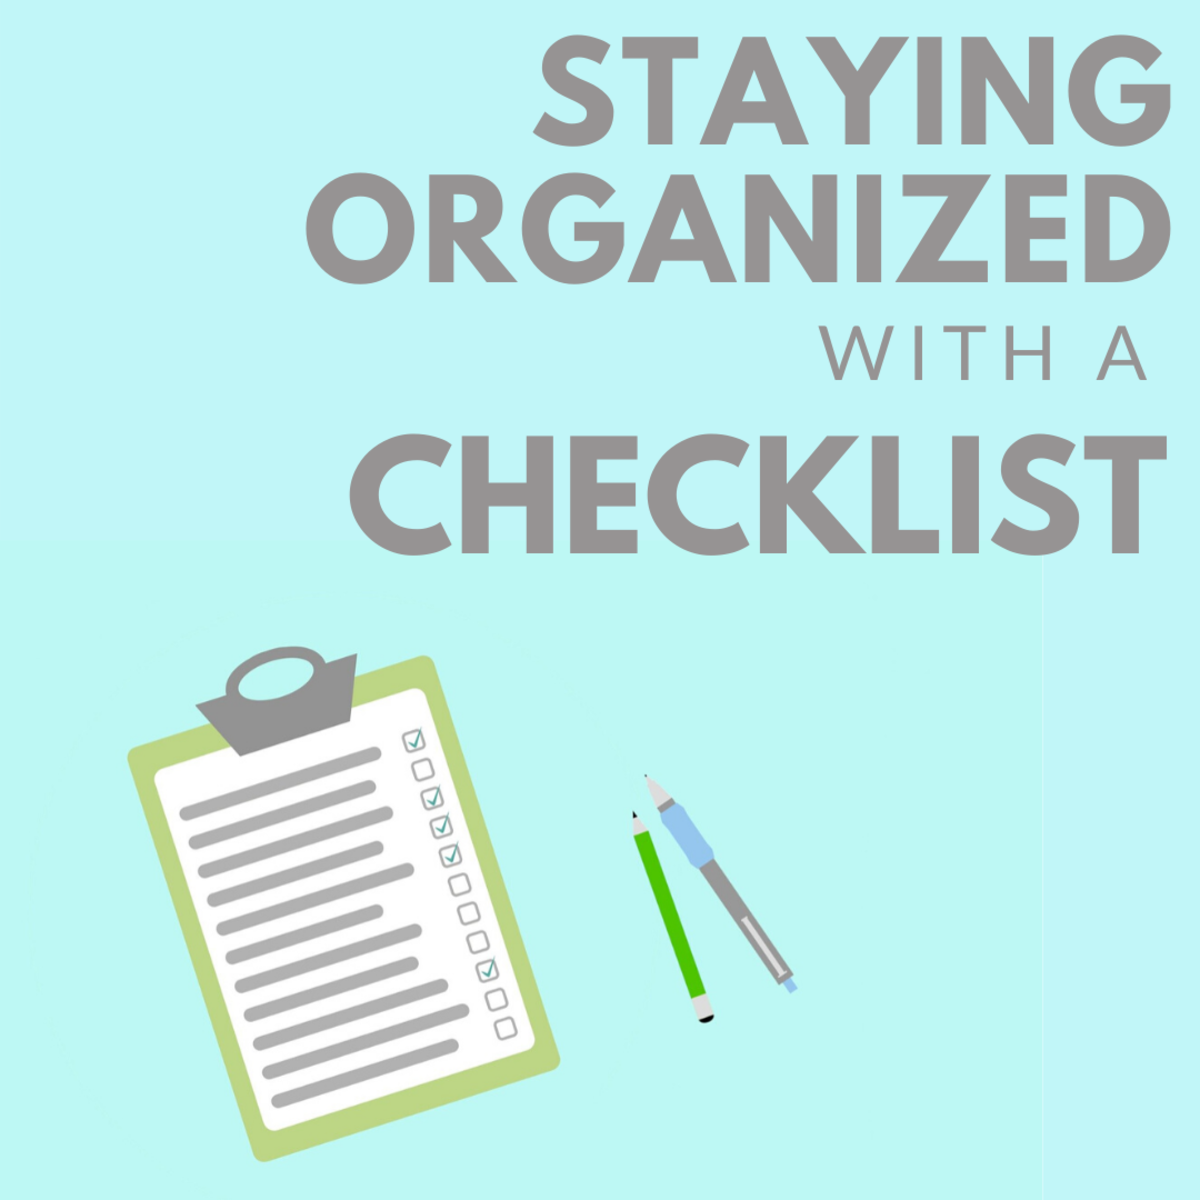 How to Stay Organized With a Checklist